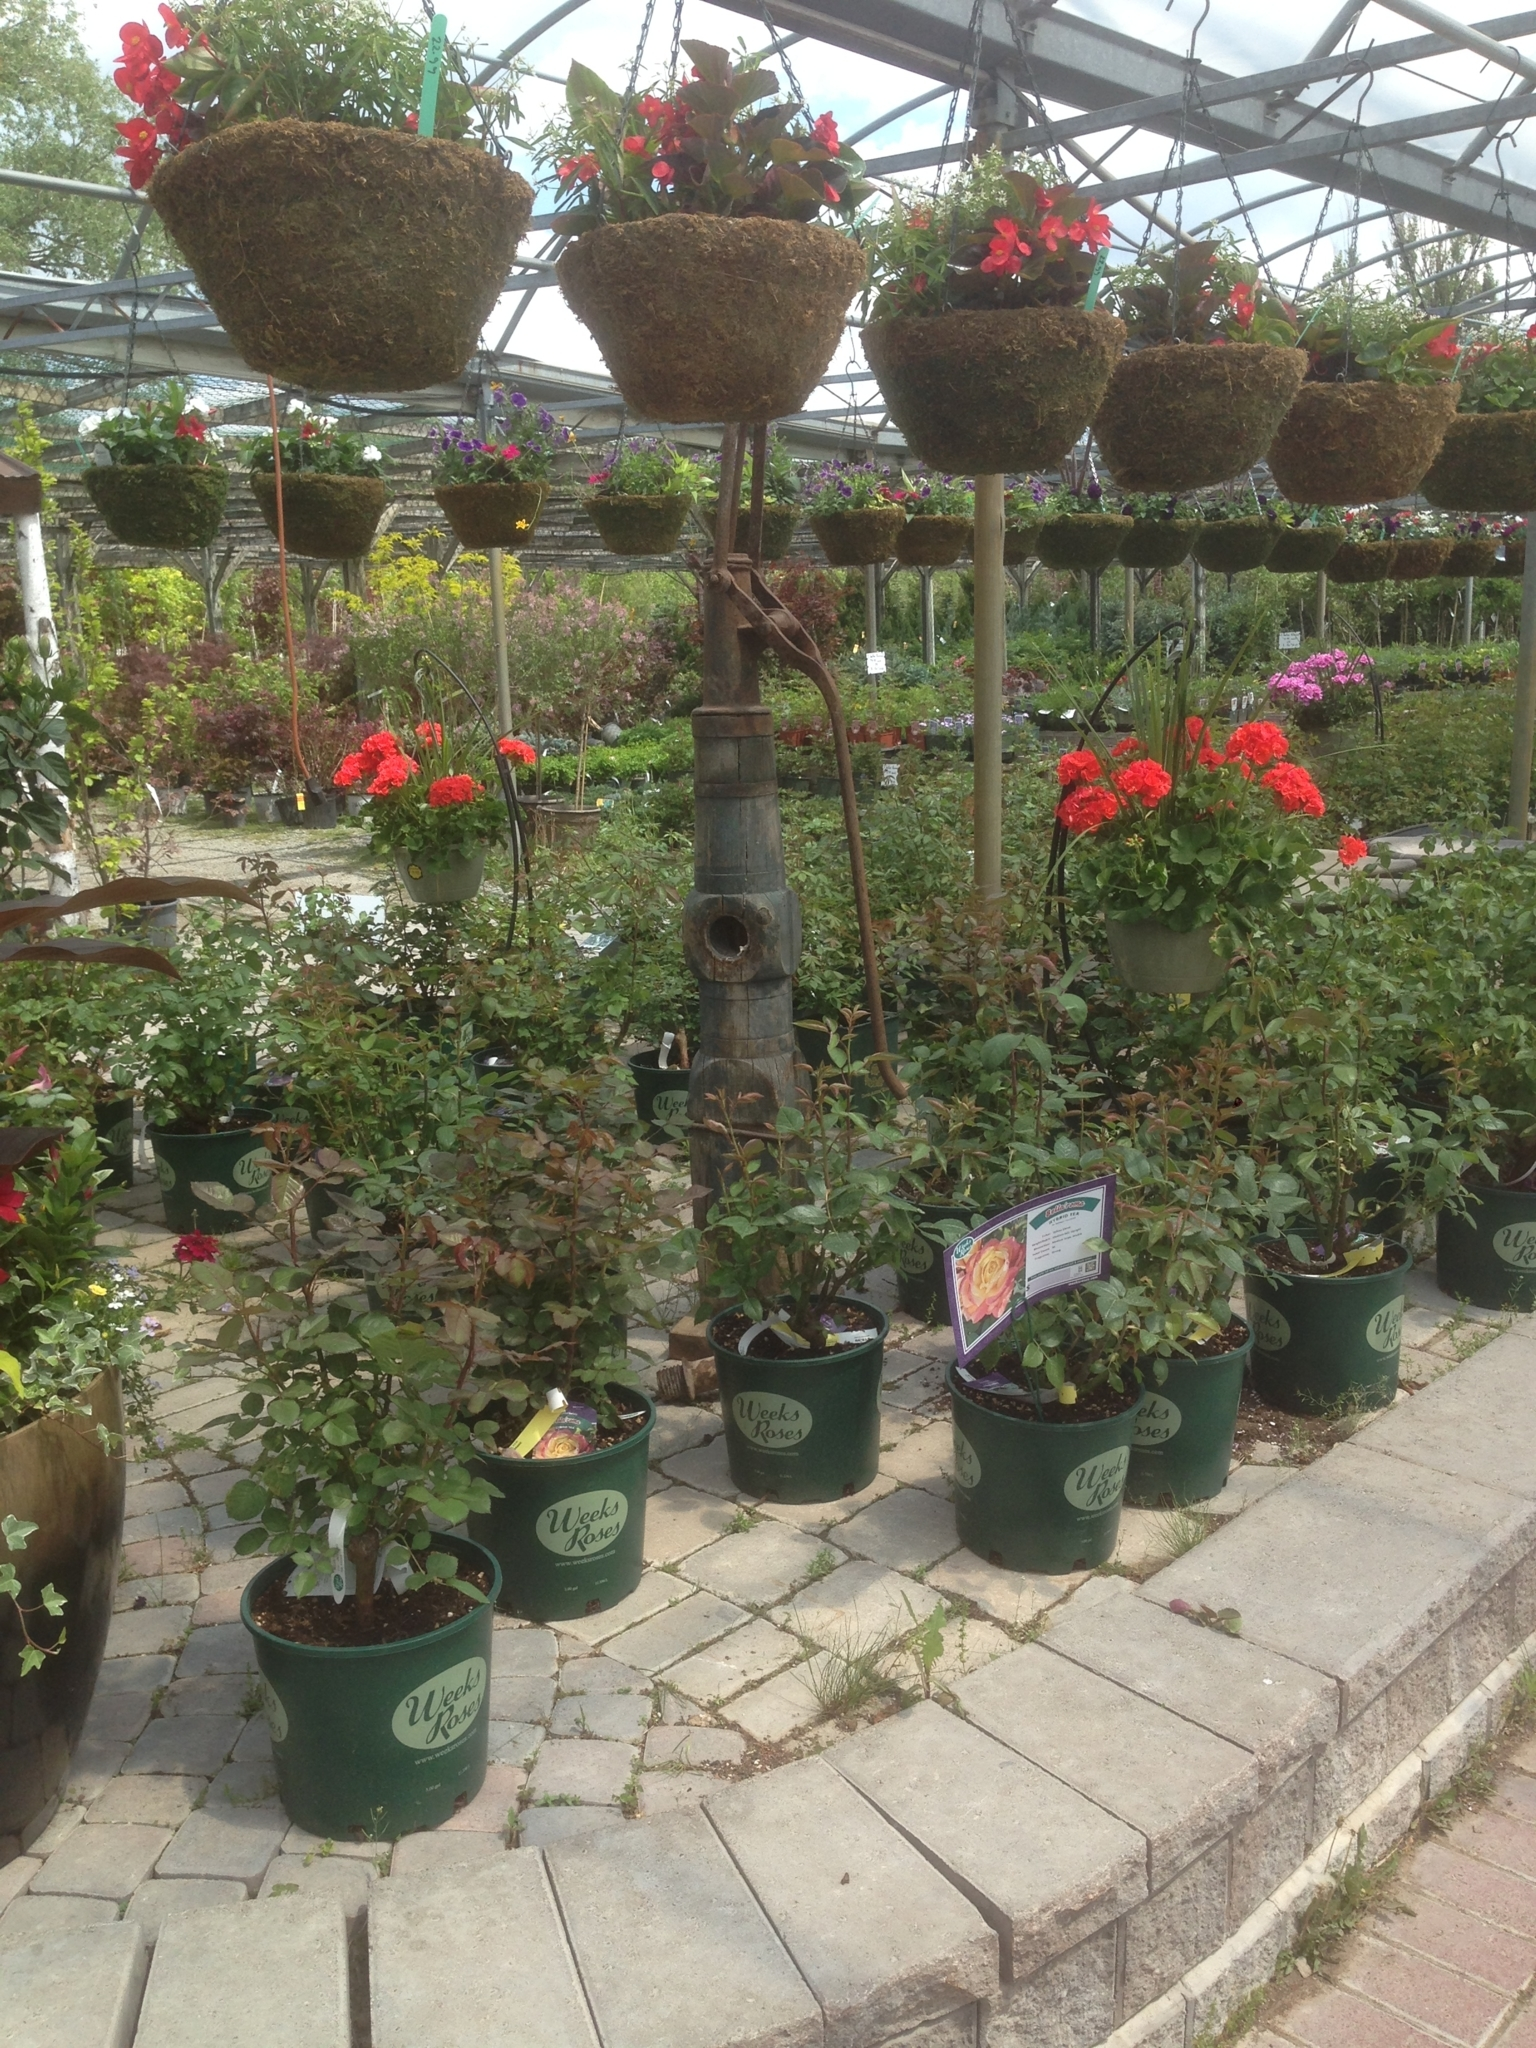 Holland Valley Nursery in Holland Landing: Holland Valley Garden Nursery